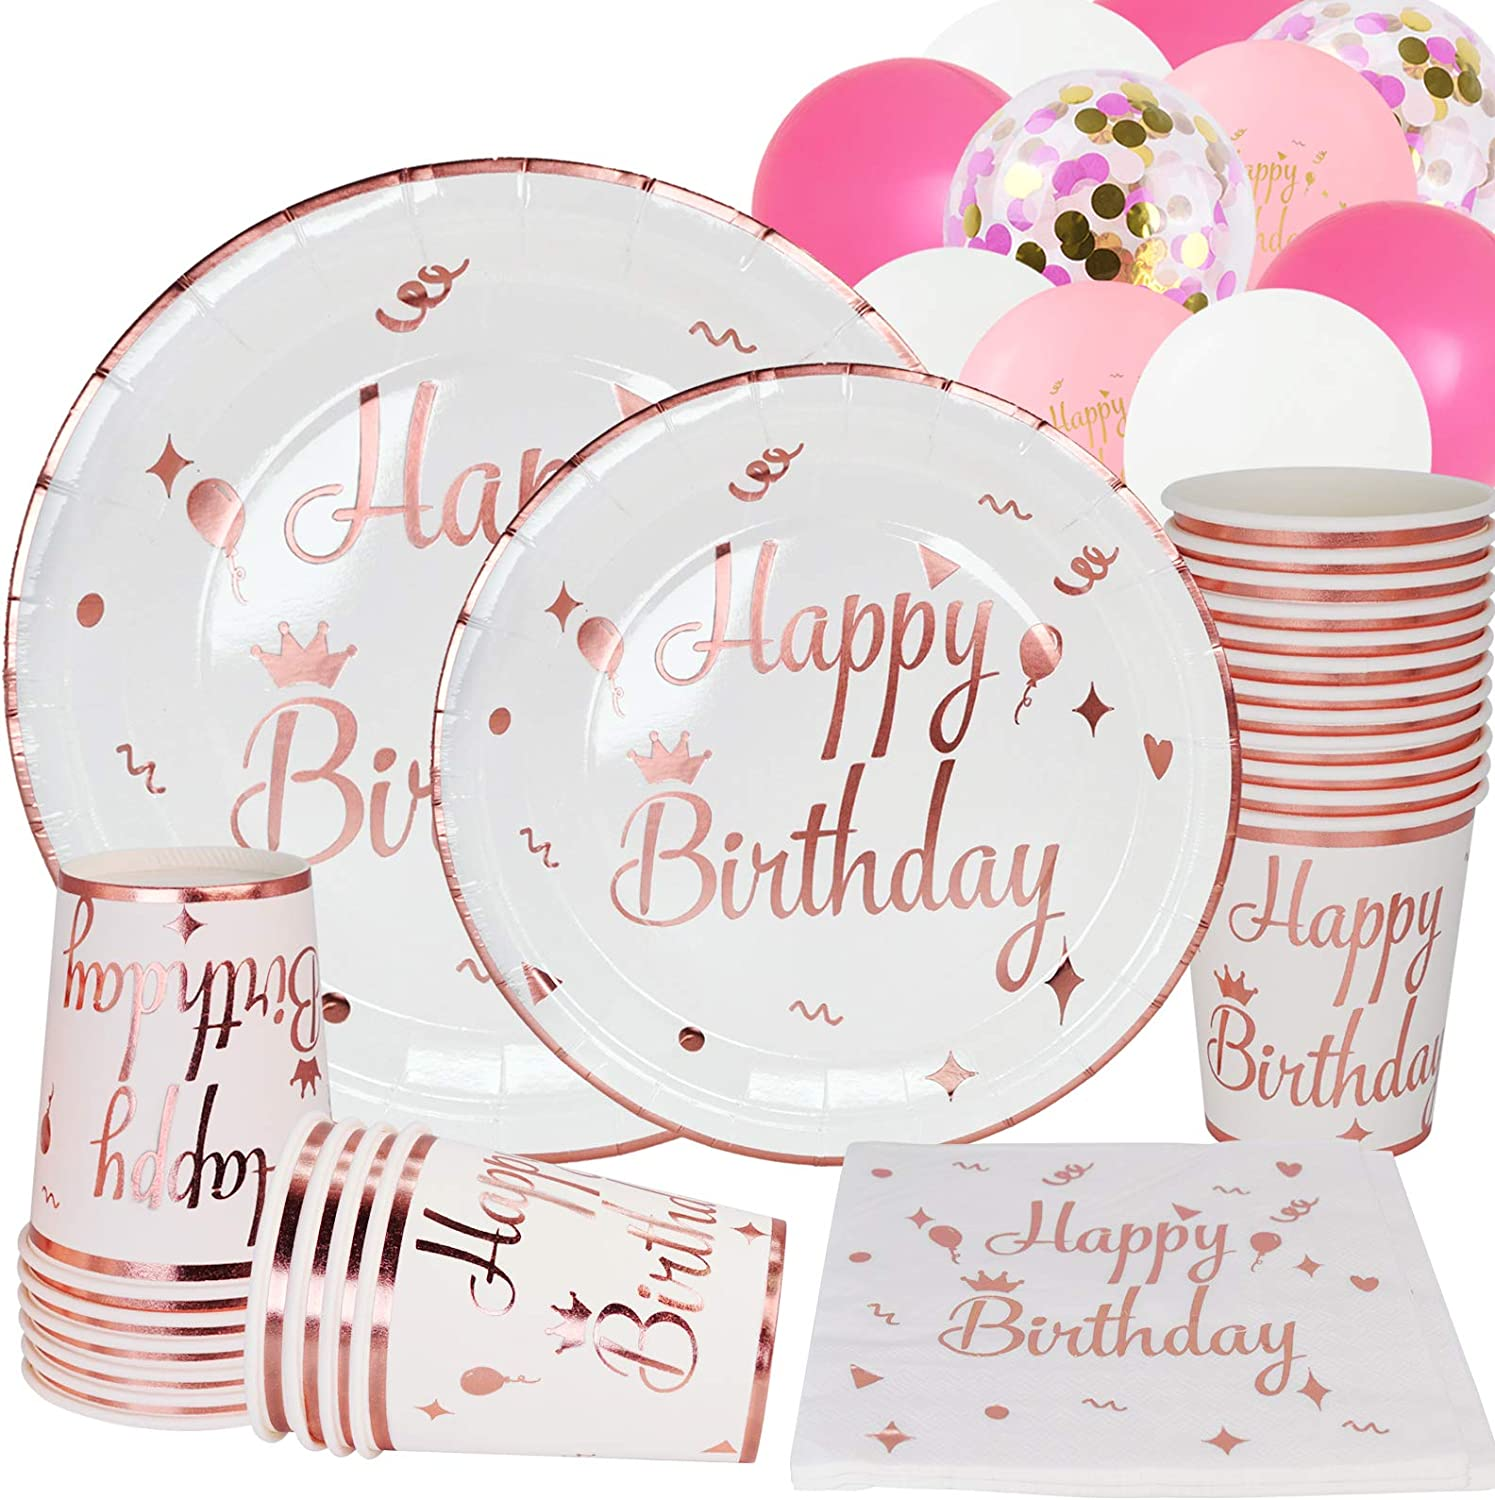 White and Gold Happy Birthday Party Supplies for 25 Guests RoseGold Foil Paper Plates and Napkins Set Perfect for Birthday Baby Shower,Girl Women Event & Party Supplie